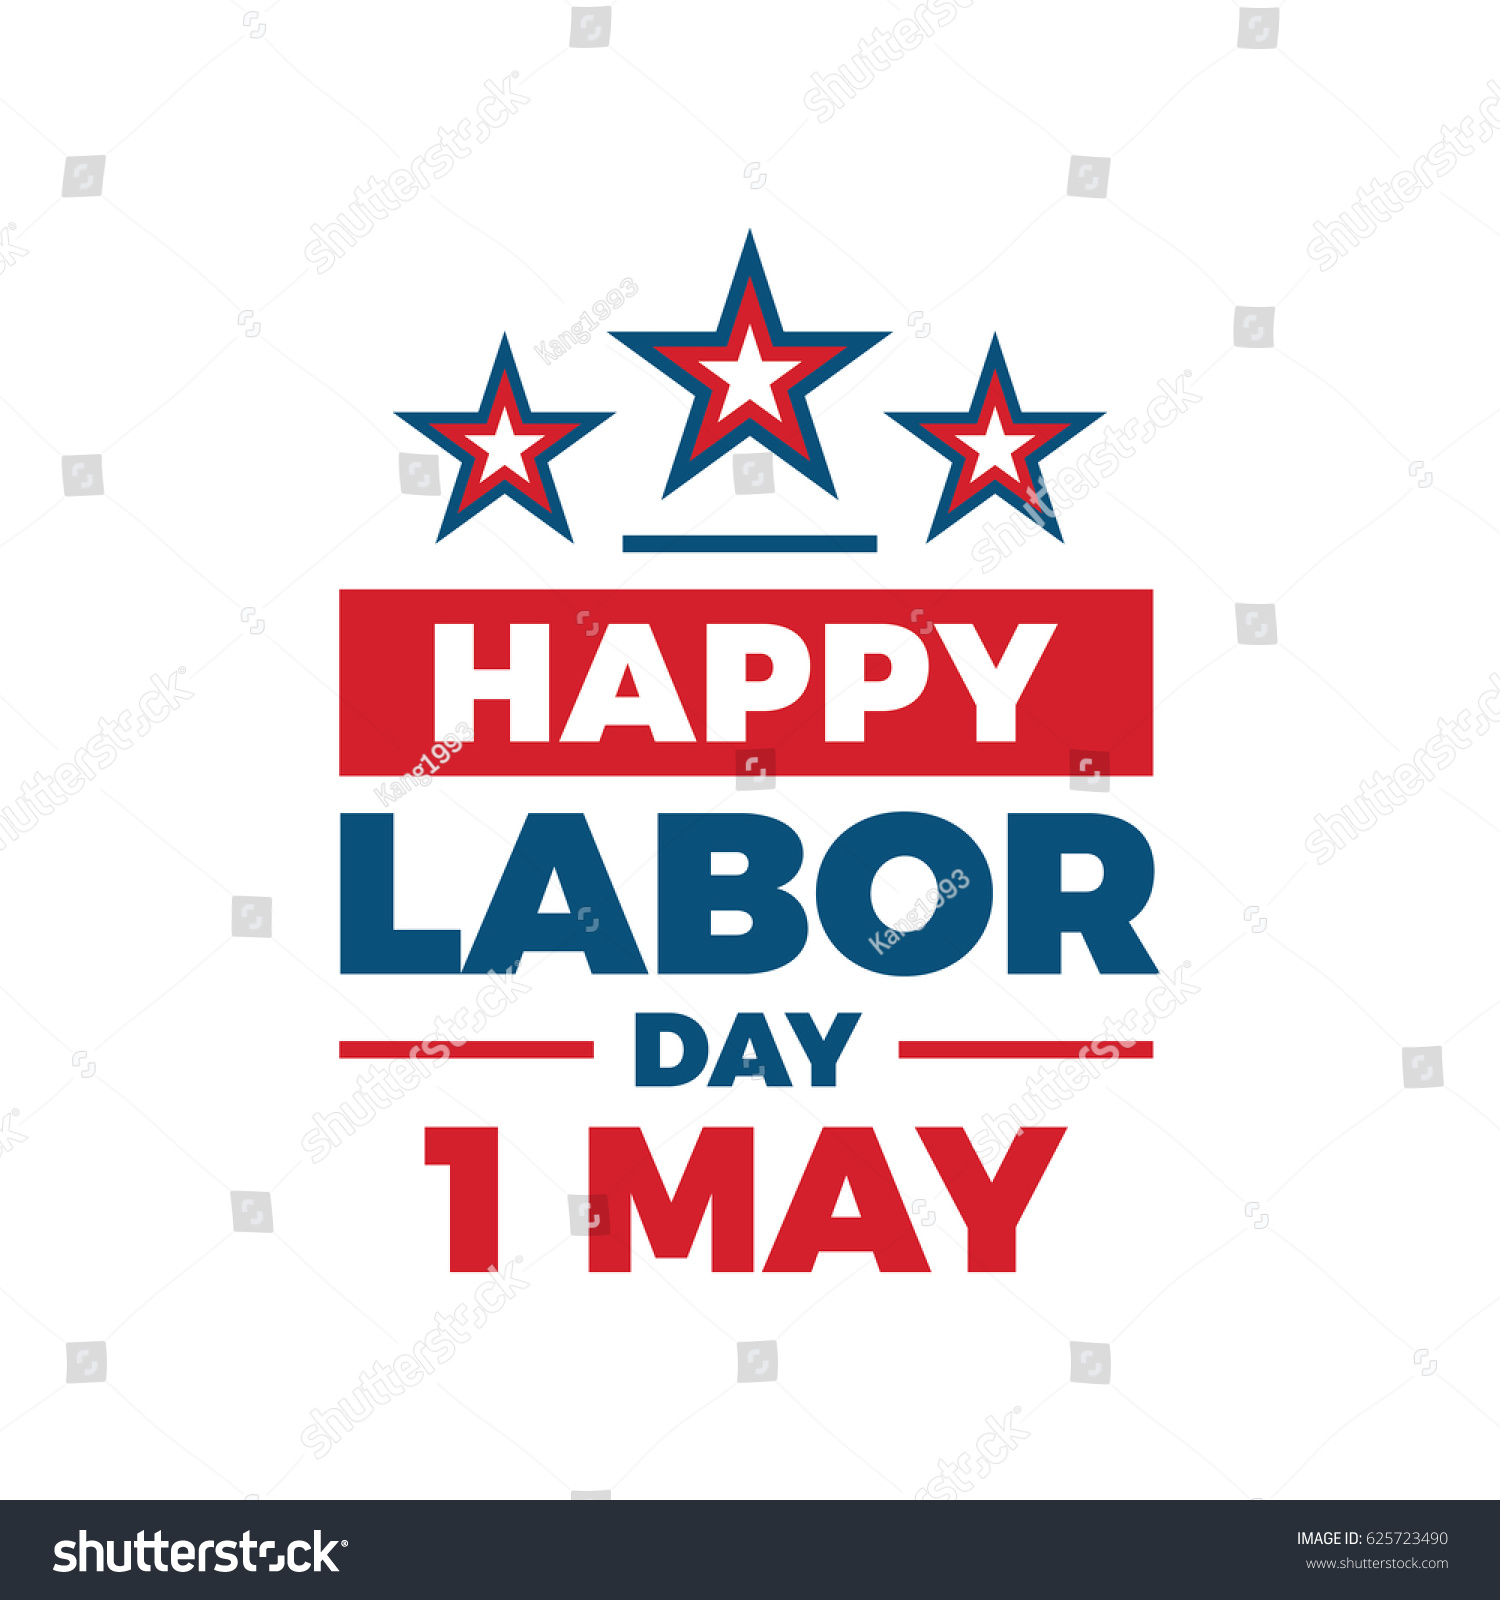 Happy labor day greetings cards labor stock vector 625723490 happy labor day greetings cards labor day design labor day logo poster banner kristyandbryce Choice Image